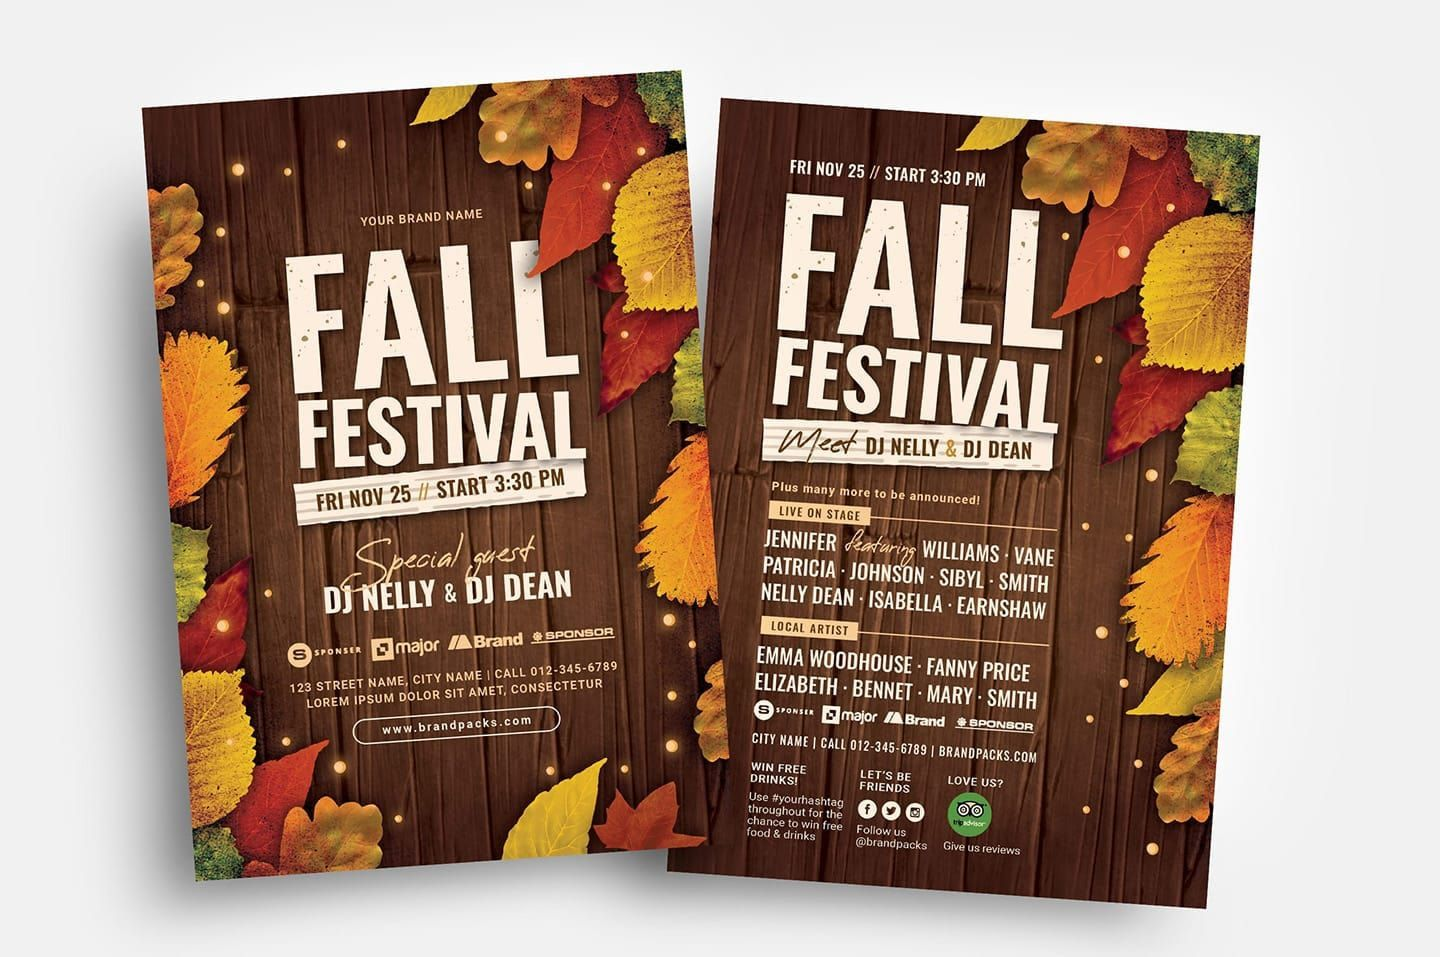 005 Fantastic Fall Festival Flyer Template Inspiration  FreeFull